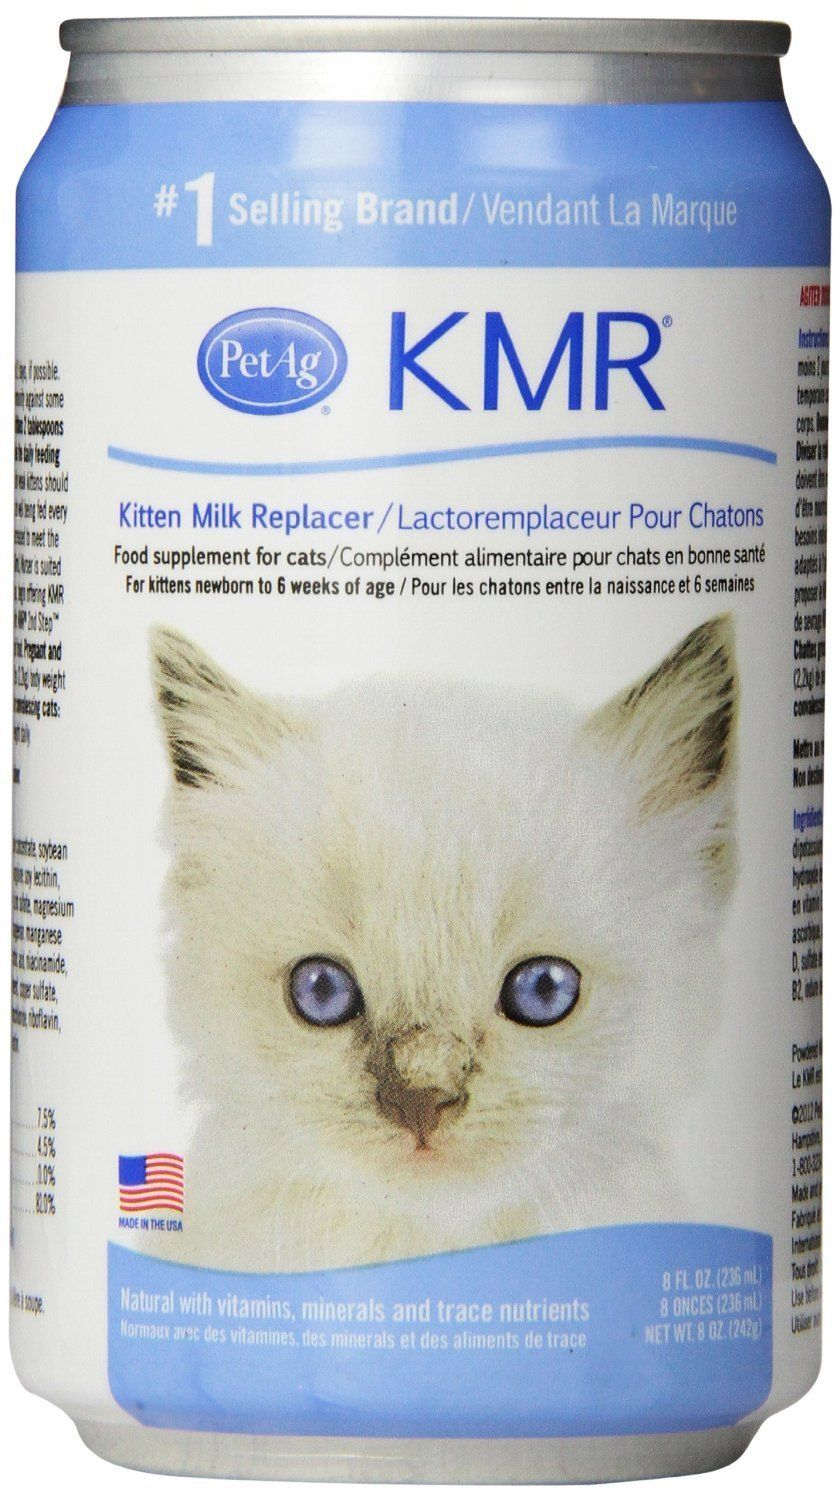 Kmr Liquid Milk Replacer For Kittens And Cats 8oz Cans Case Of 12 You Will Love This More Info Here Best Cat Food Cat Health Cats And Kittens Cats